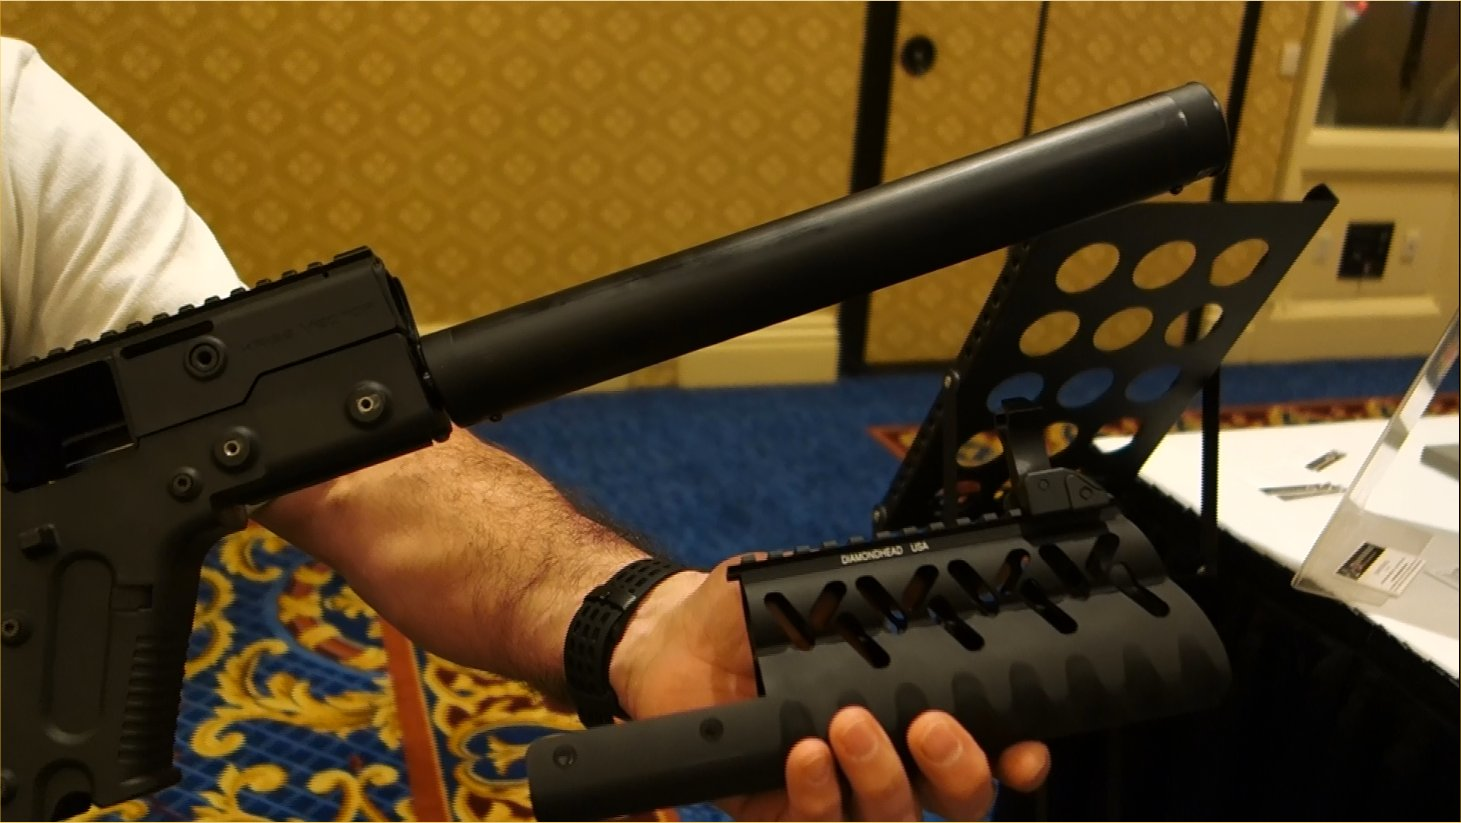 Diamondhead V RS Drop In Slide On Lightweight Tactical Handguard Rail System with Diamondhead Integrated Sighting System for KRISS Vector CRB .45 ACP Tactical Carbine John DeLuca SHOT Show 2013 David Crane DefenseReview.com DR 8 Diamondhead V RS Drop In/Slide On Lightweight Modular Tactical Handguard/Rail System with Diamondhead Integrated Sighting System for Civilian Legal, Semi Auto Only KRISS Vector CRB .45 ACP Carbine (Video!)